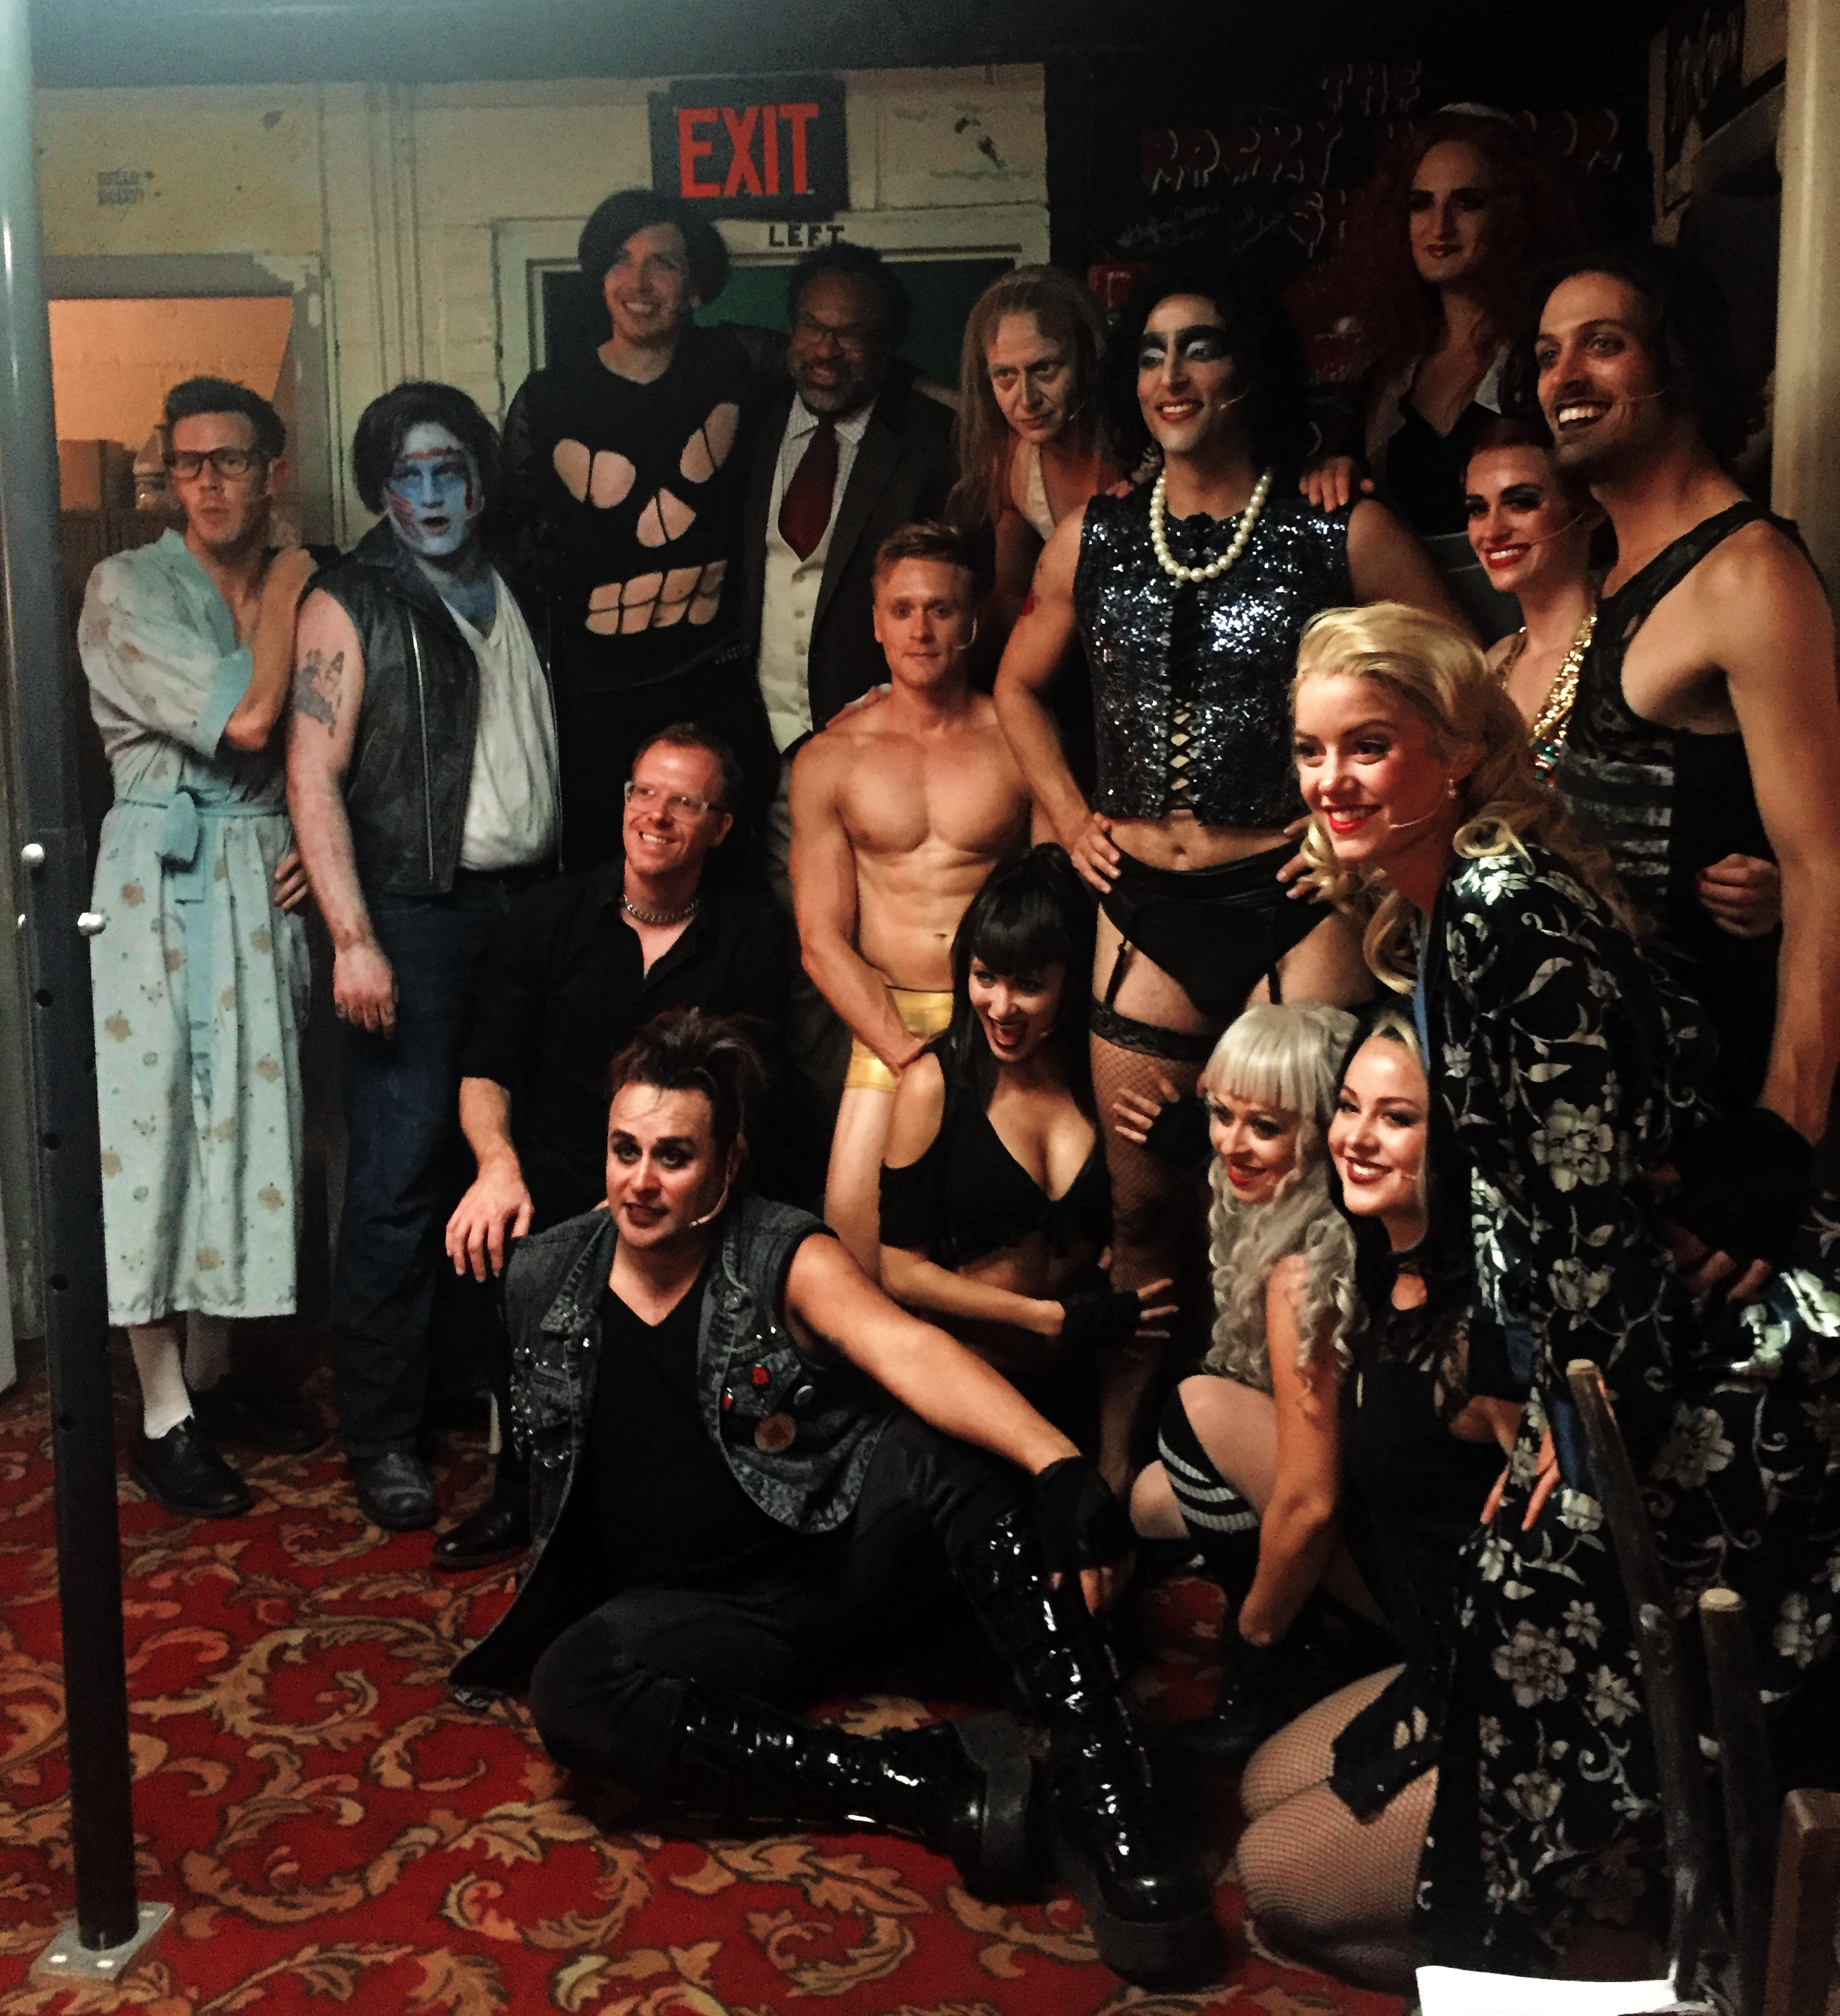 The Amazing Cast of Rocky Horror Show at Gateway Playhouse.